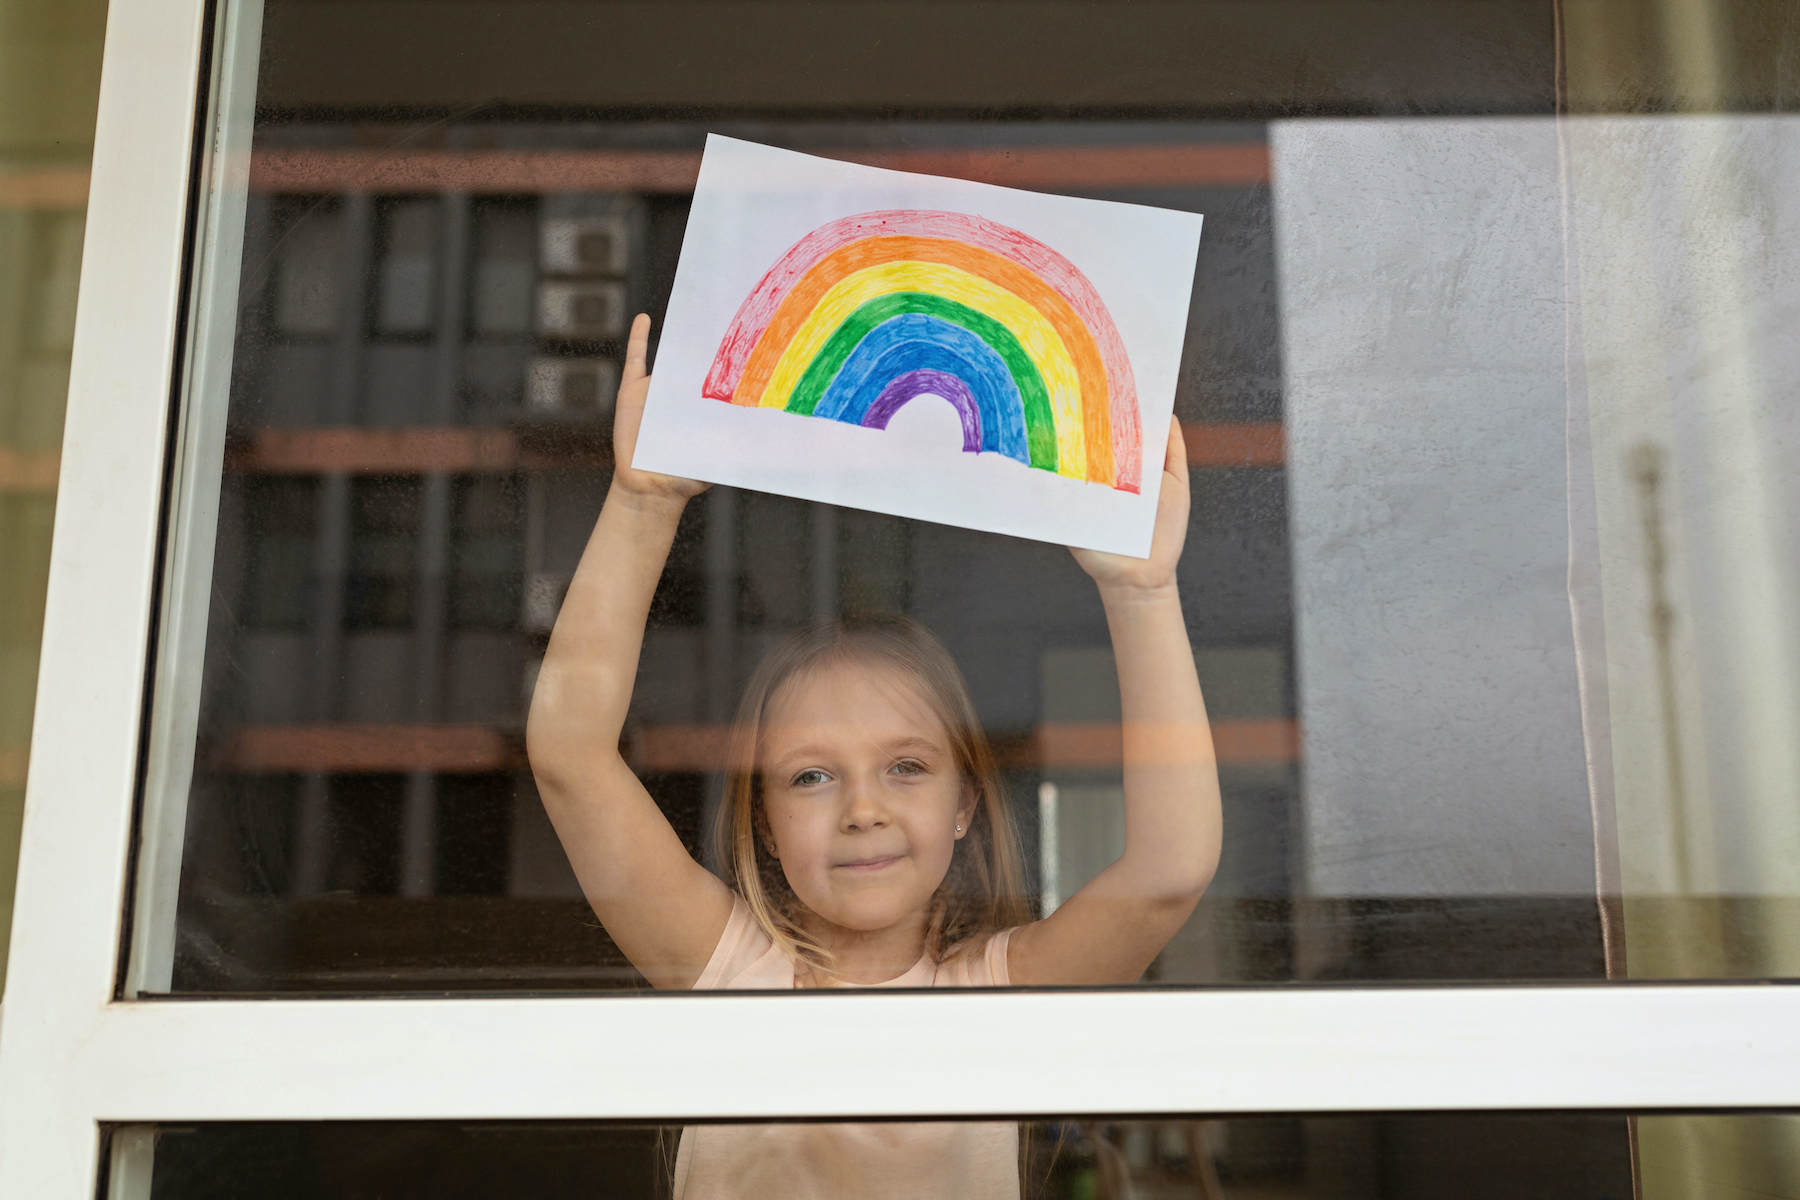 Kid painting rainbow during Covid-19 quarantine at home. Girl near window.